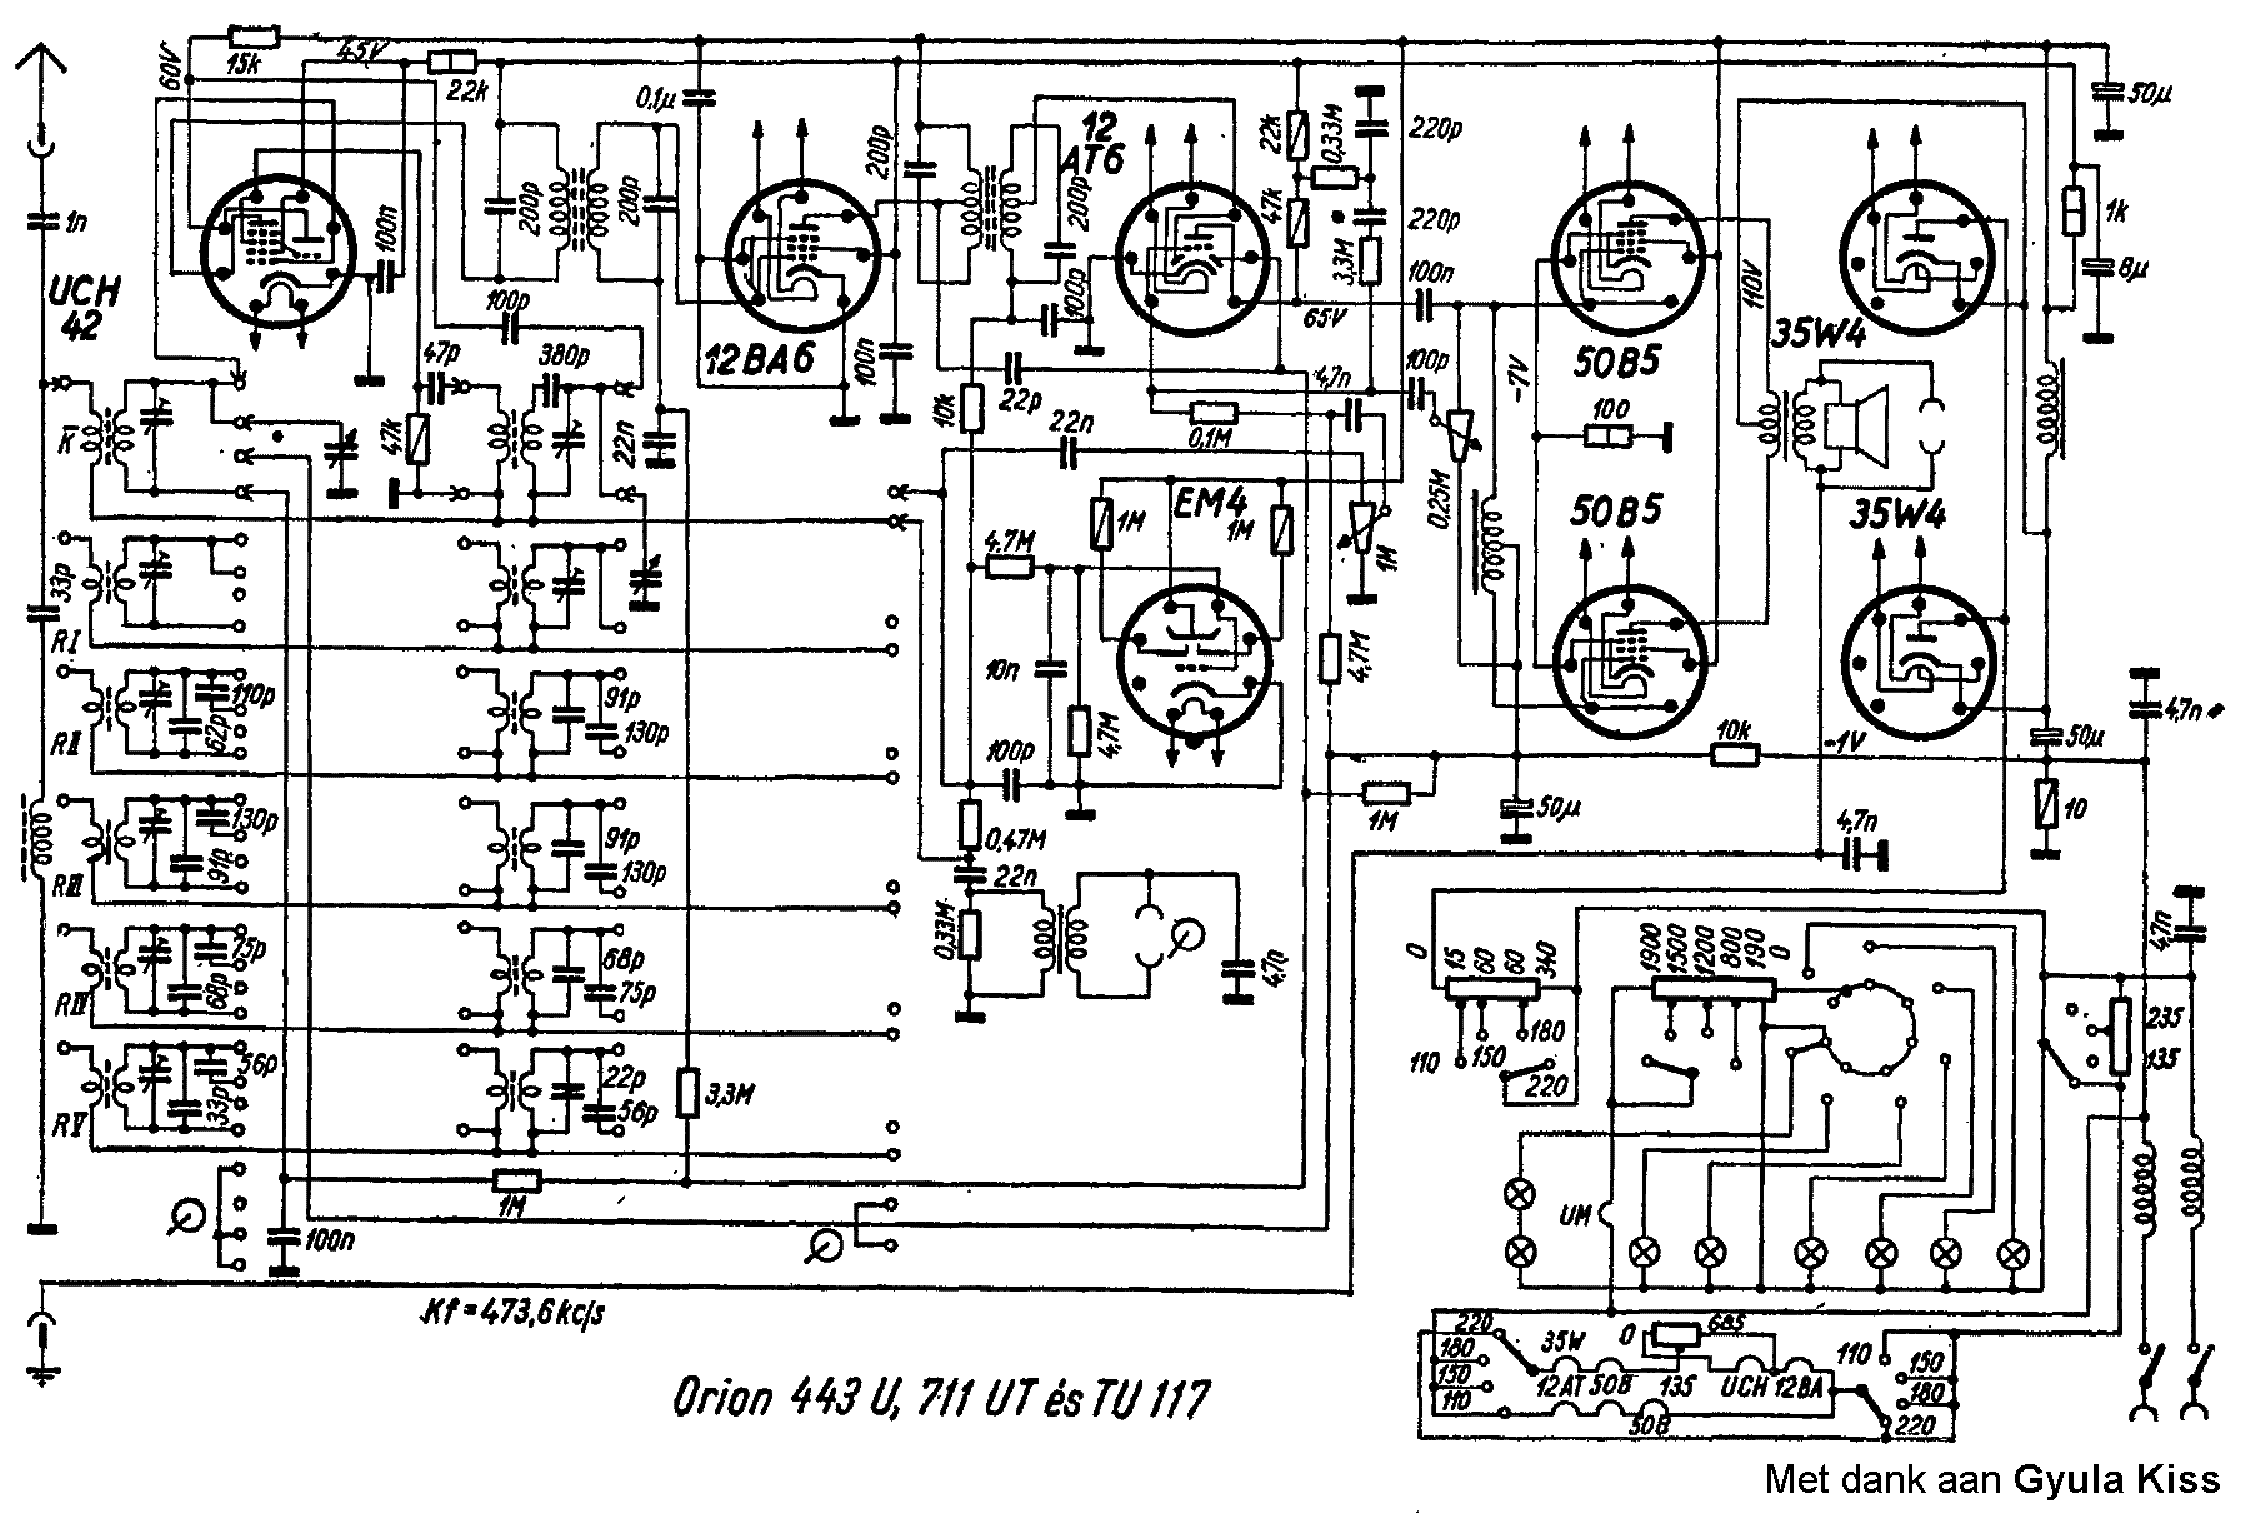 ORION 130A Service Manual download, schematics, eeprom